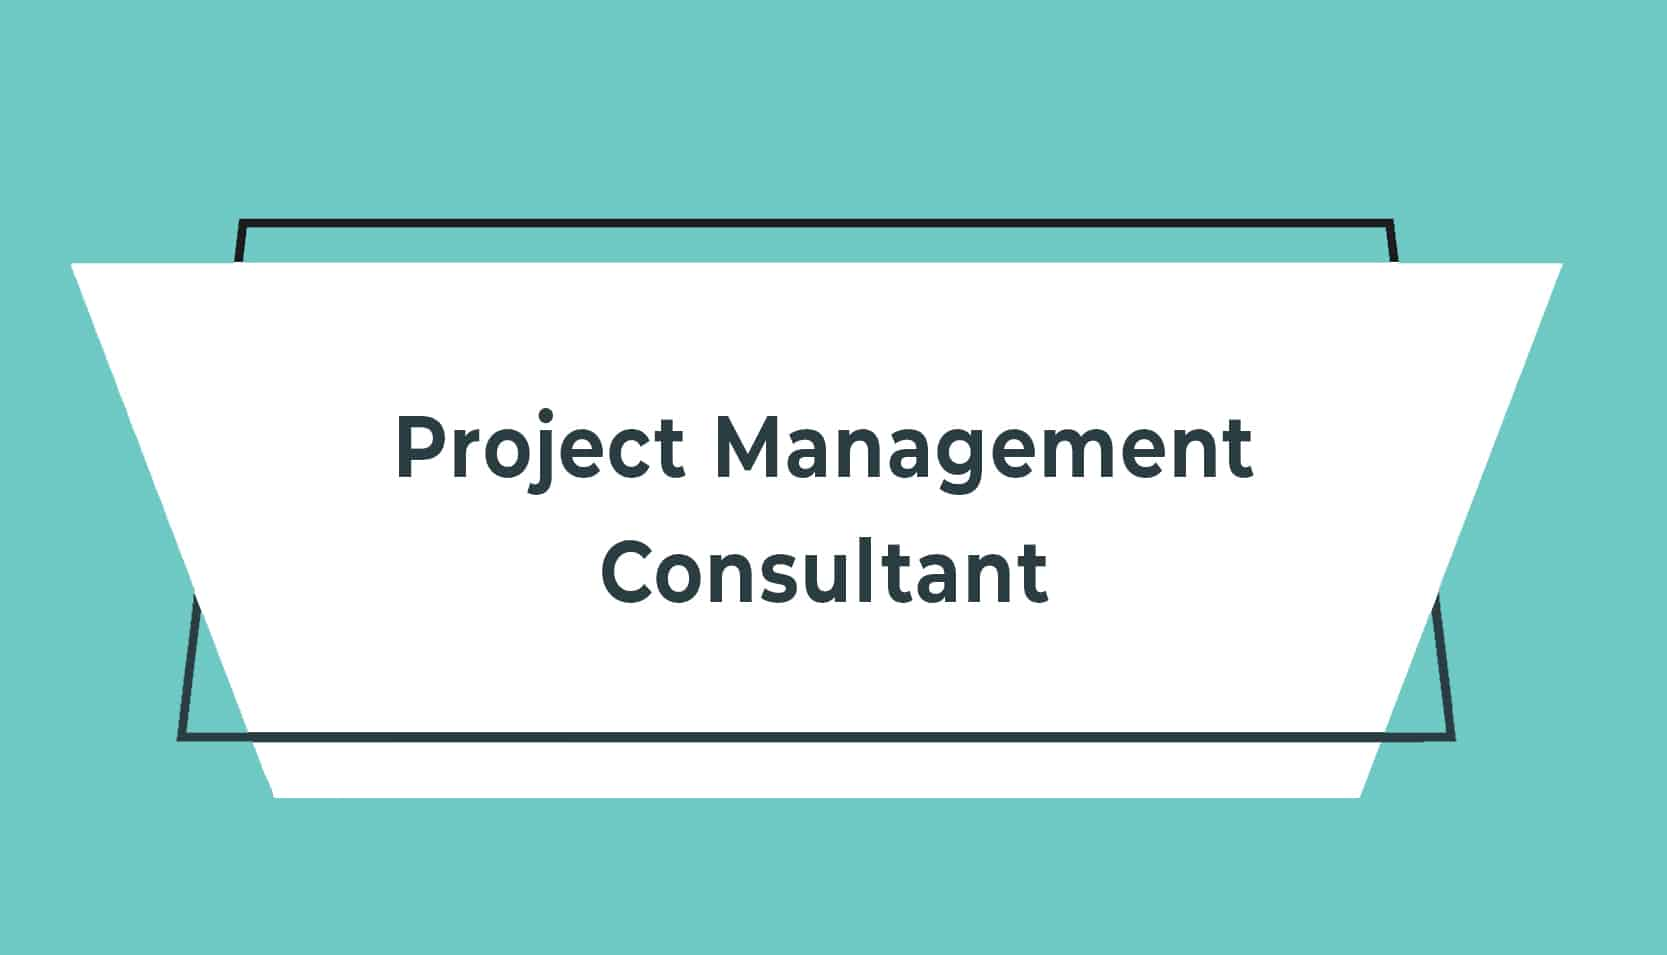 JD adverts V2 Project Management Consultant